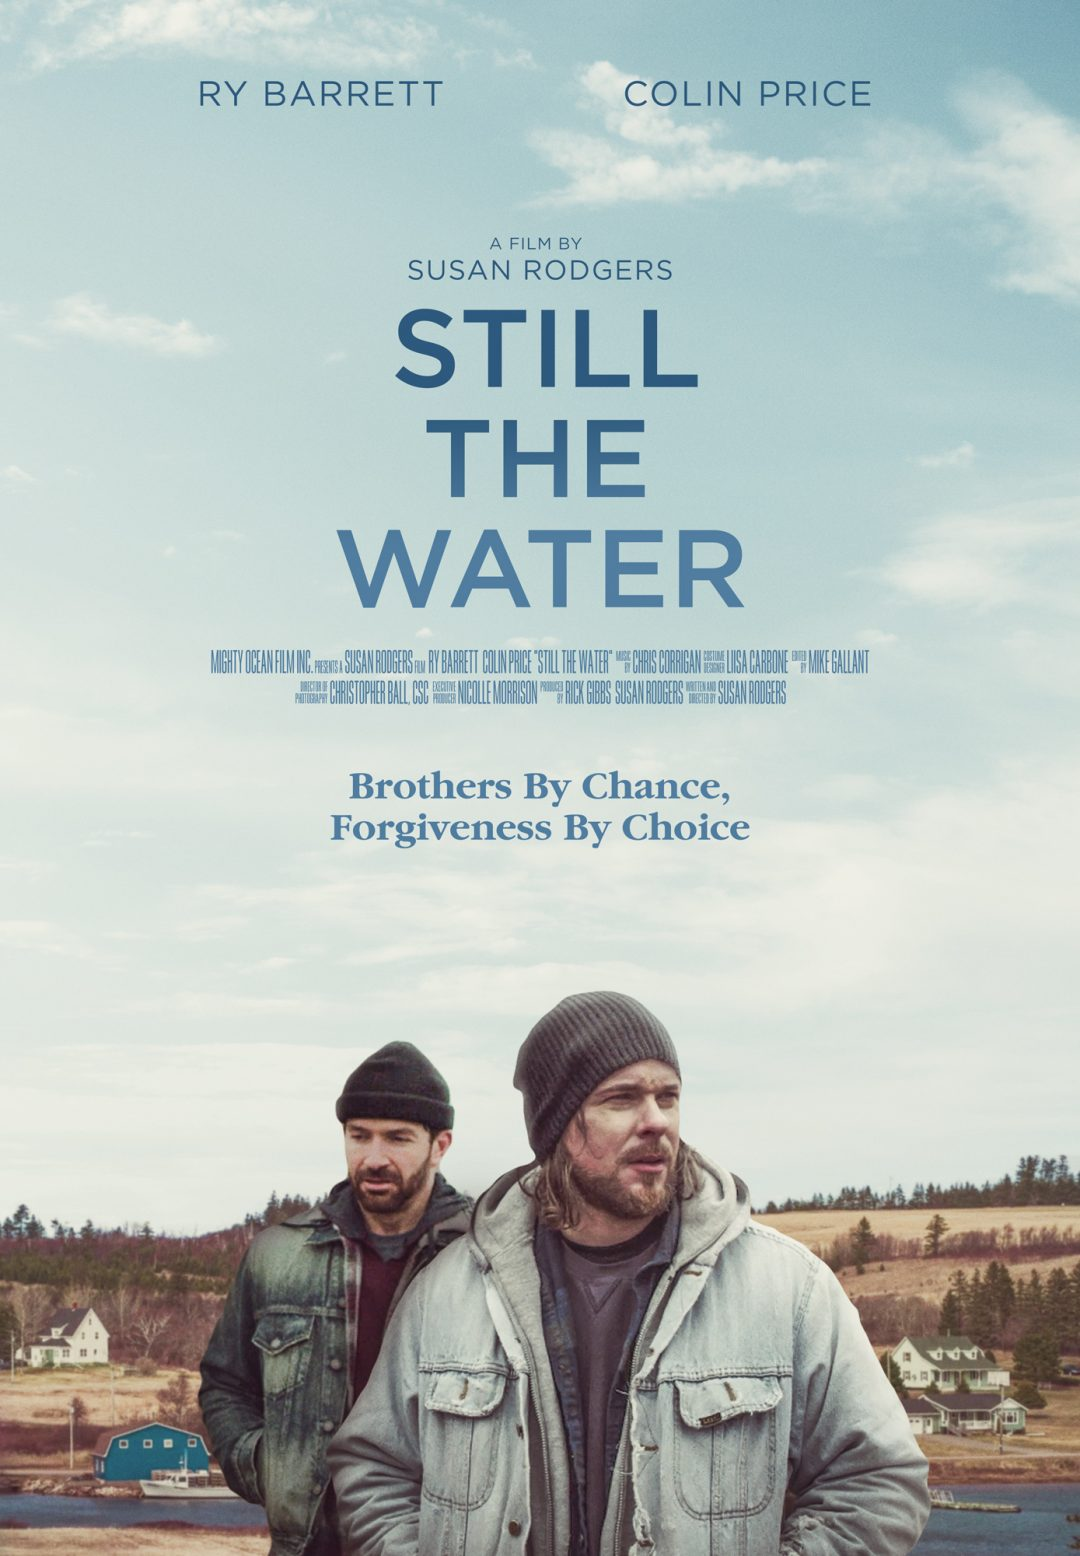 Still the water   Official Trailer - YouTube